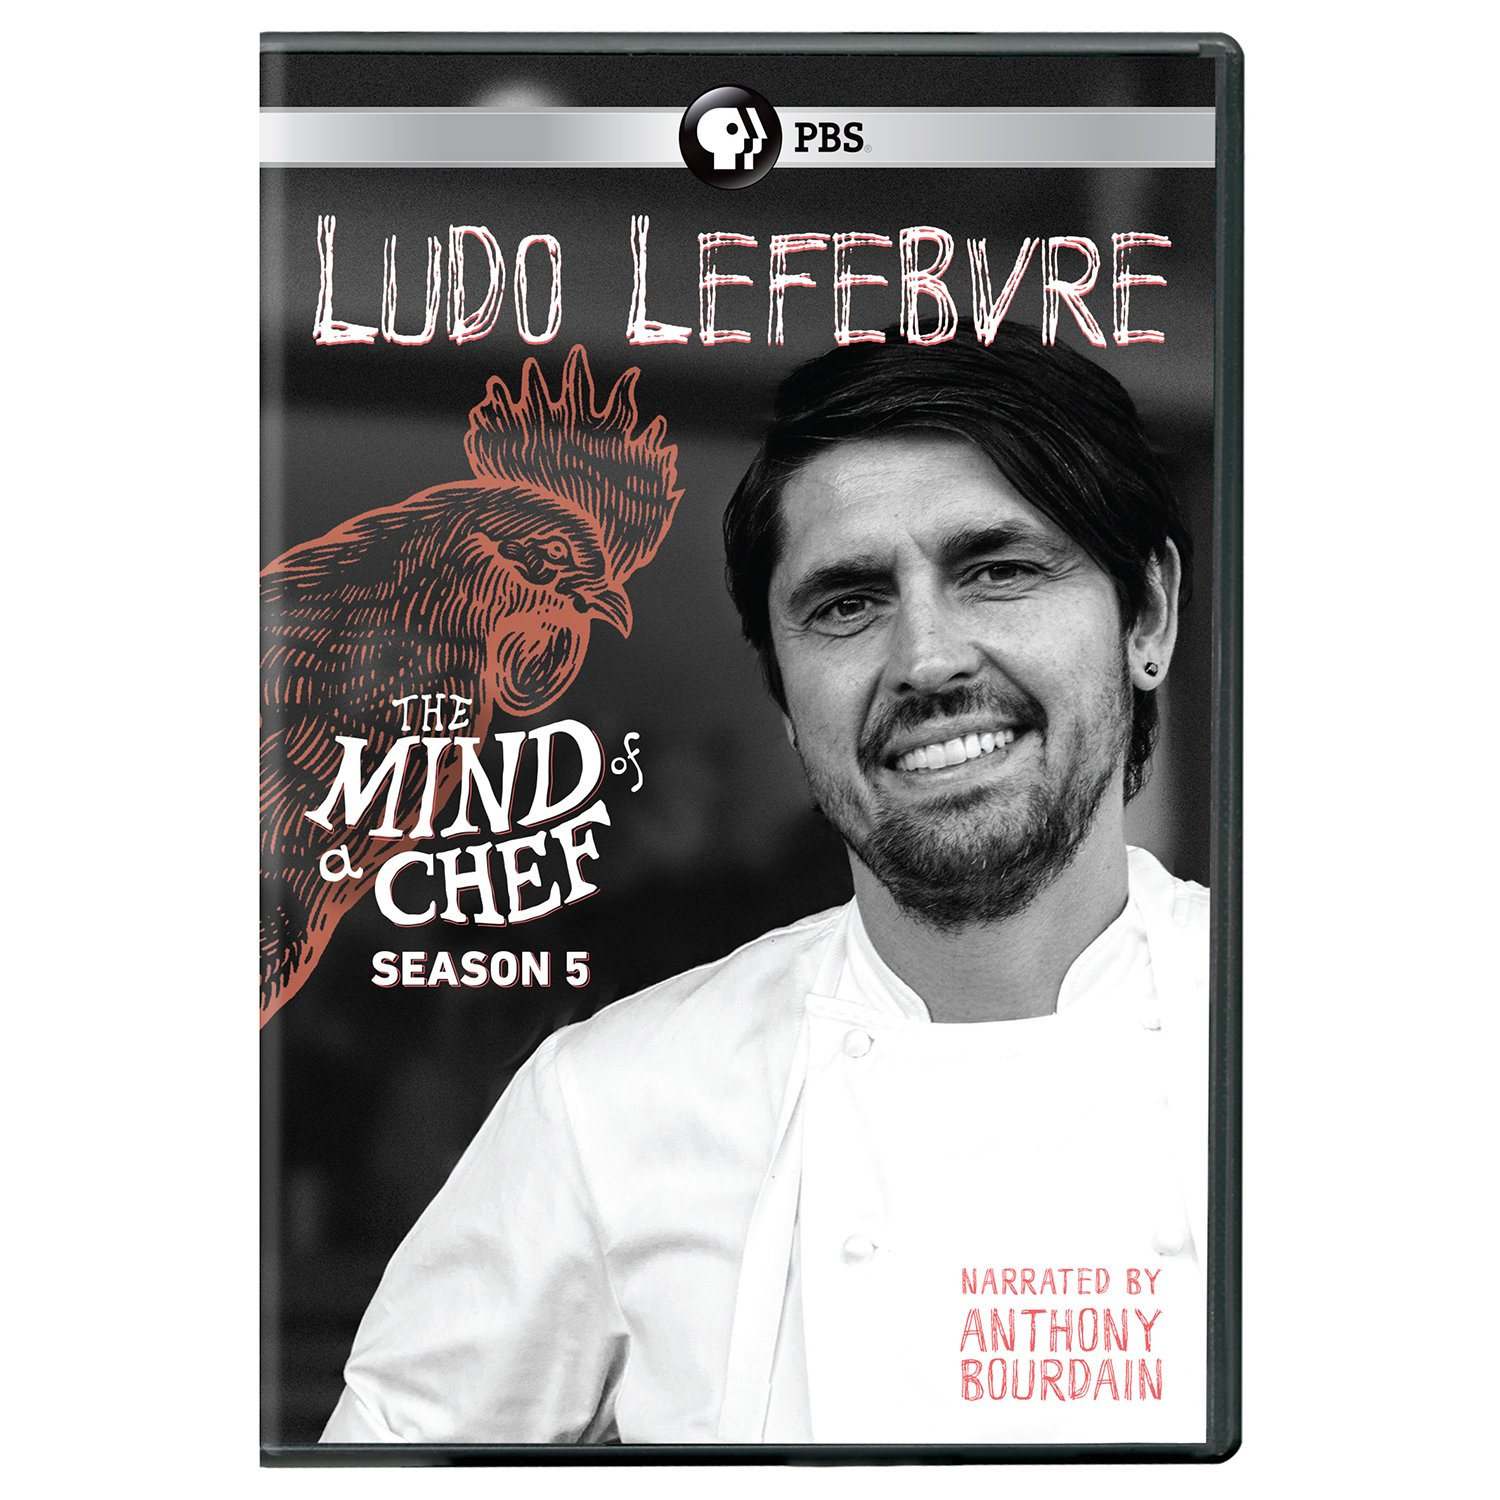 The Mind of a Chef: Ludo Lefebvre (Season 5) DVD